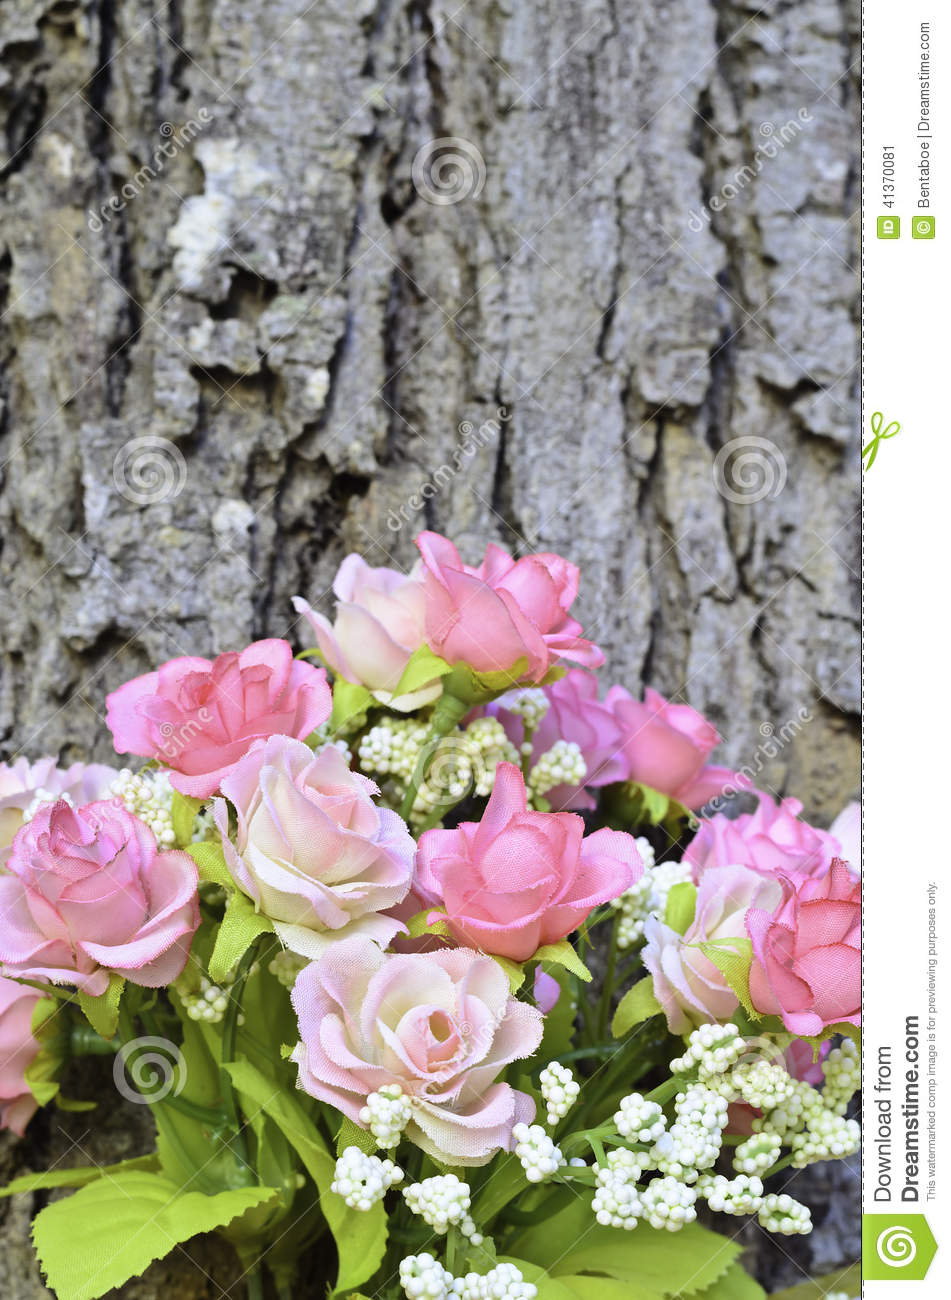 Bouquet rose artificiel rose au dessus de tronc d 39 arbre - Tronc d arbre artificiel ...